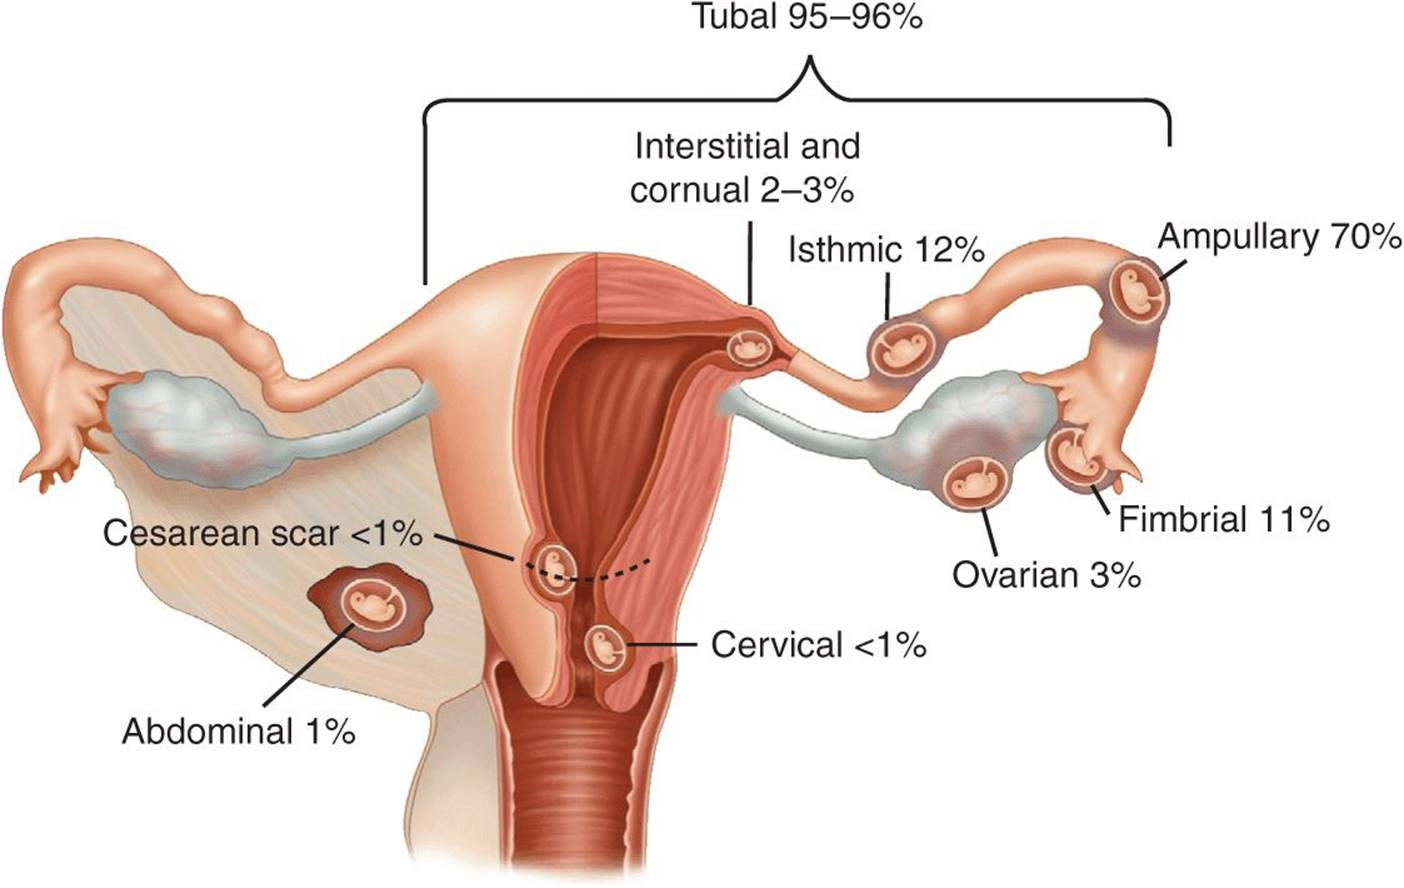 ectopic pregnancy symptoms